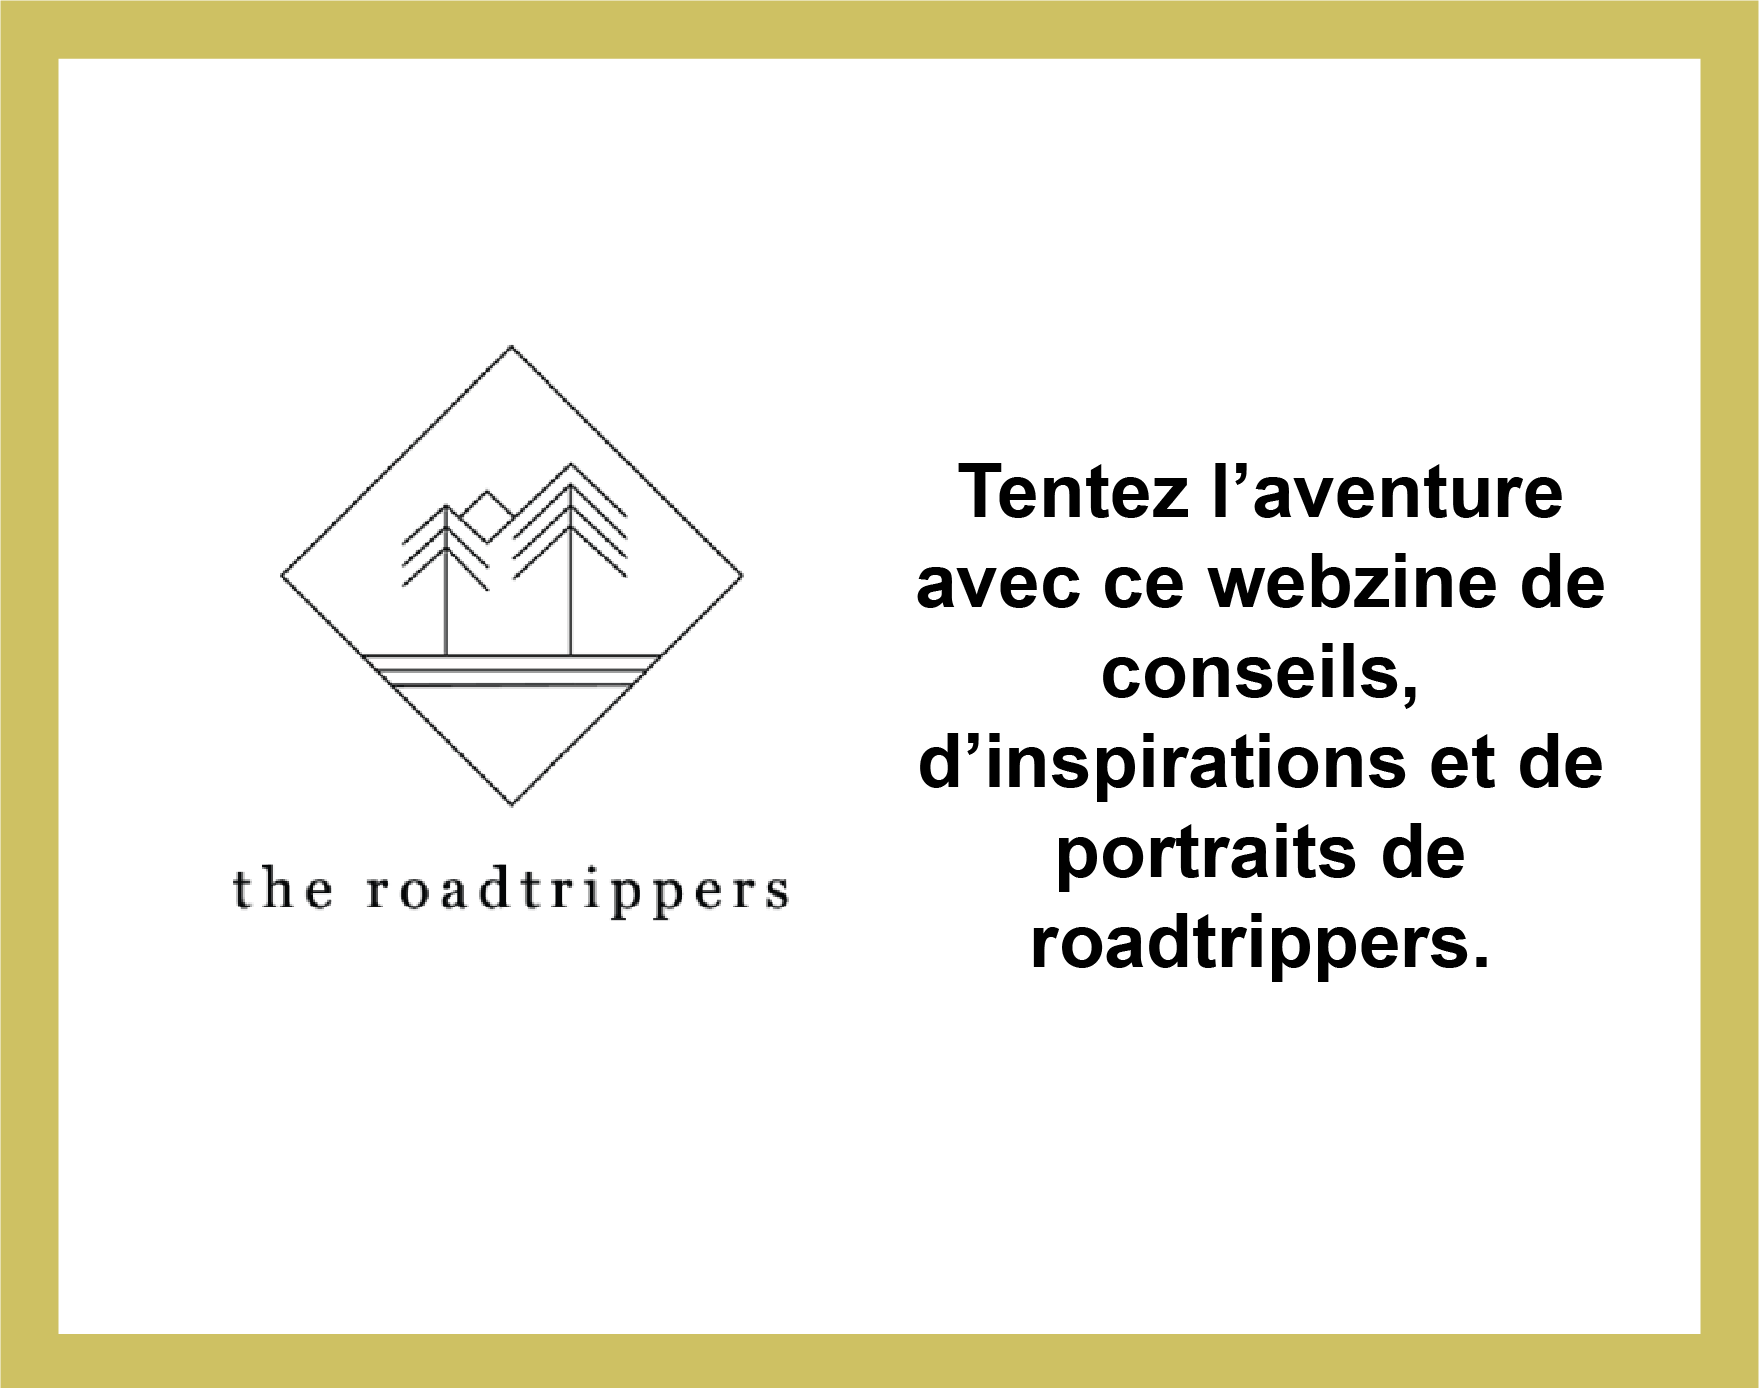 Partenariat avec The Roadtrippers, webzine de conseils, d'inspiration et de portraits de roadtrippers